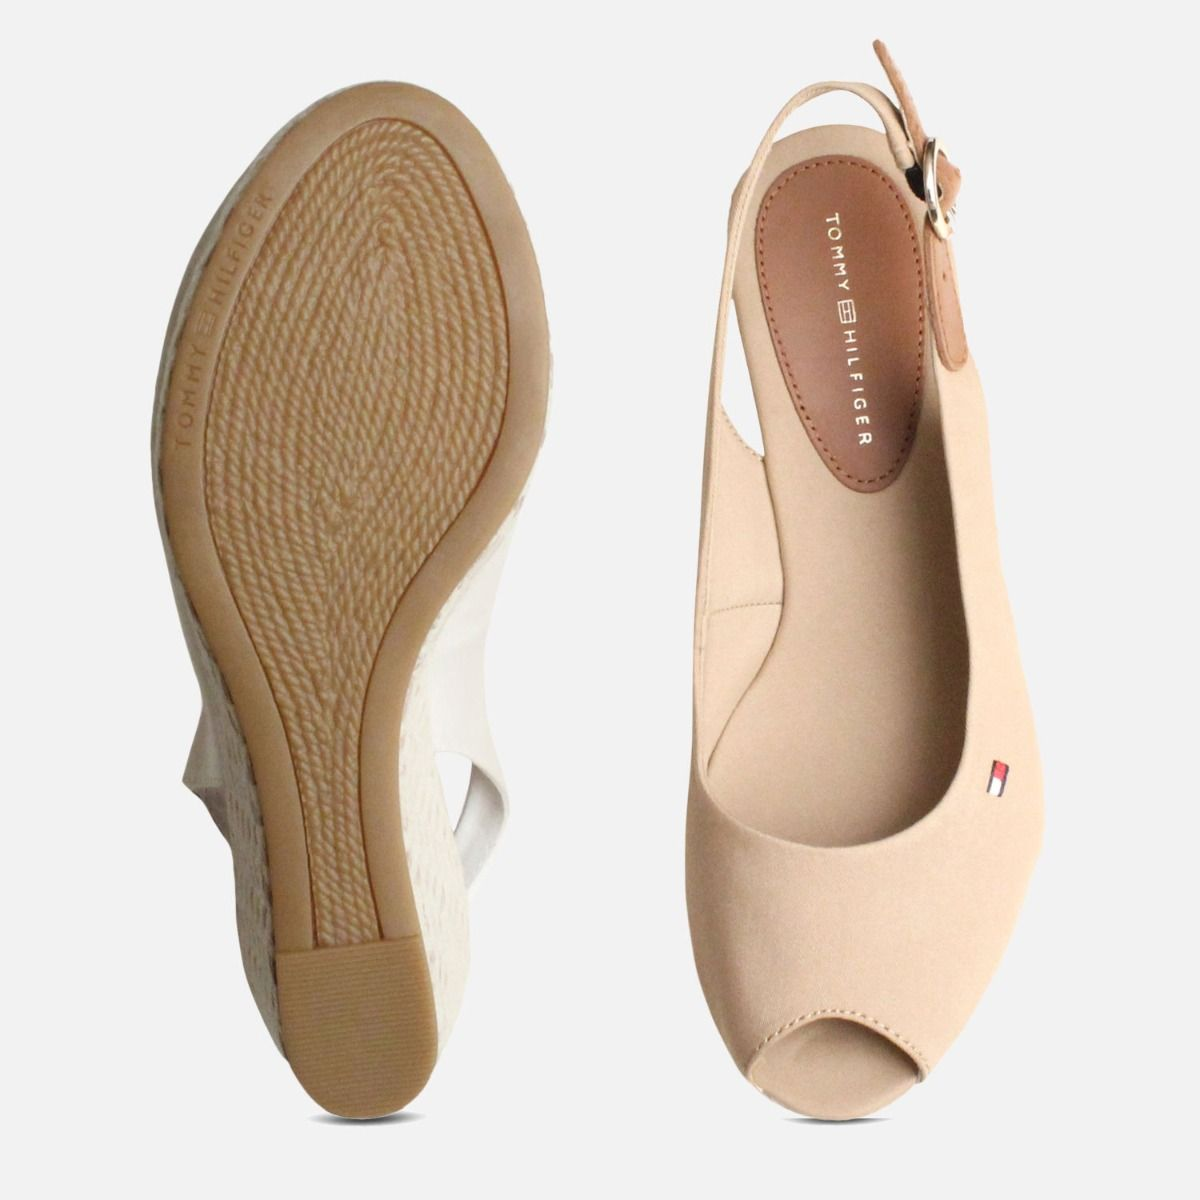 Tommy Hilfiger Elba Desert Sand Wedge Sandals